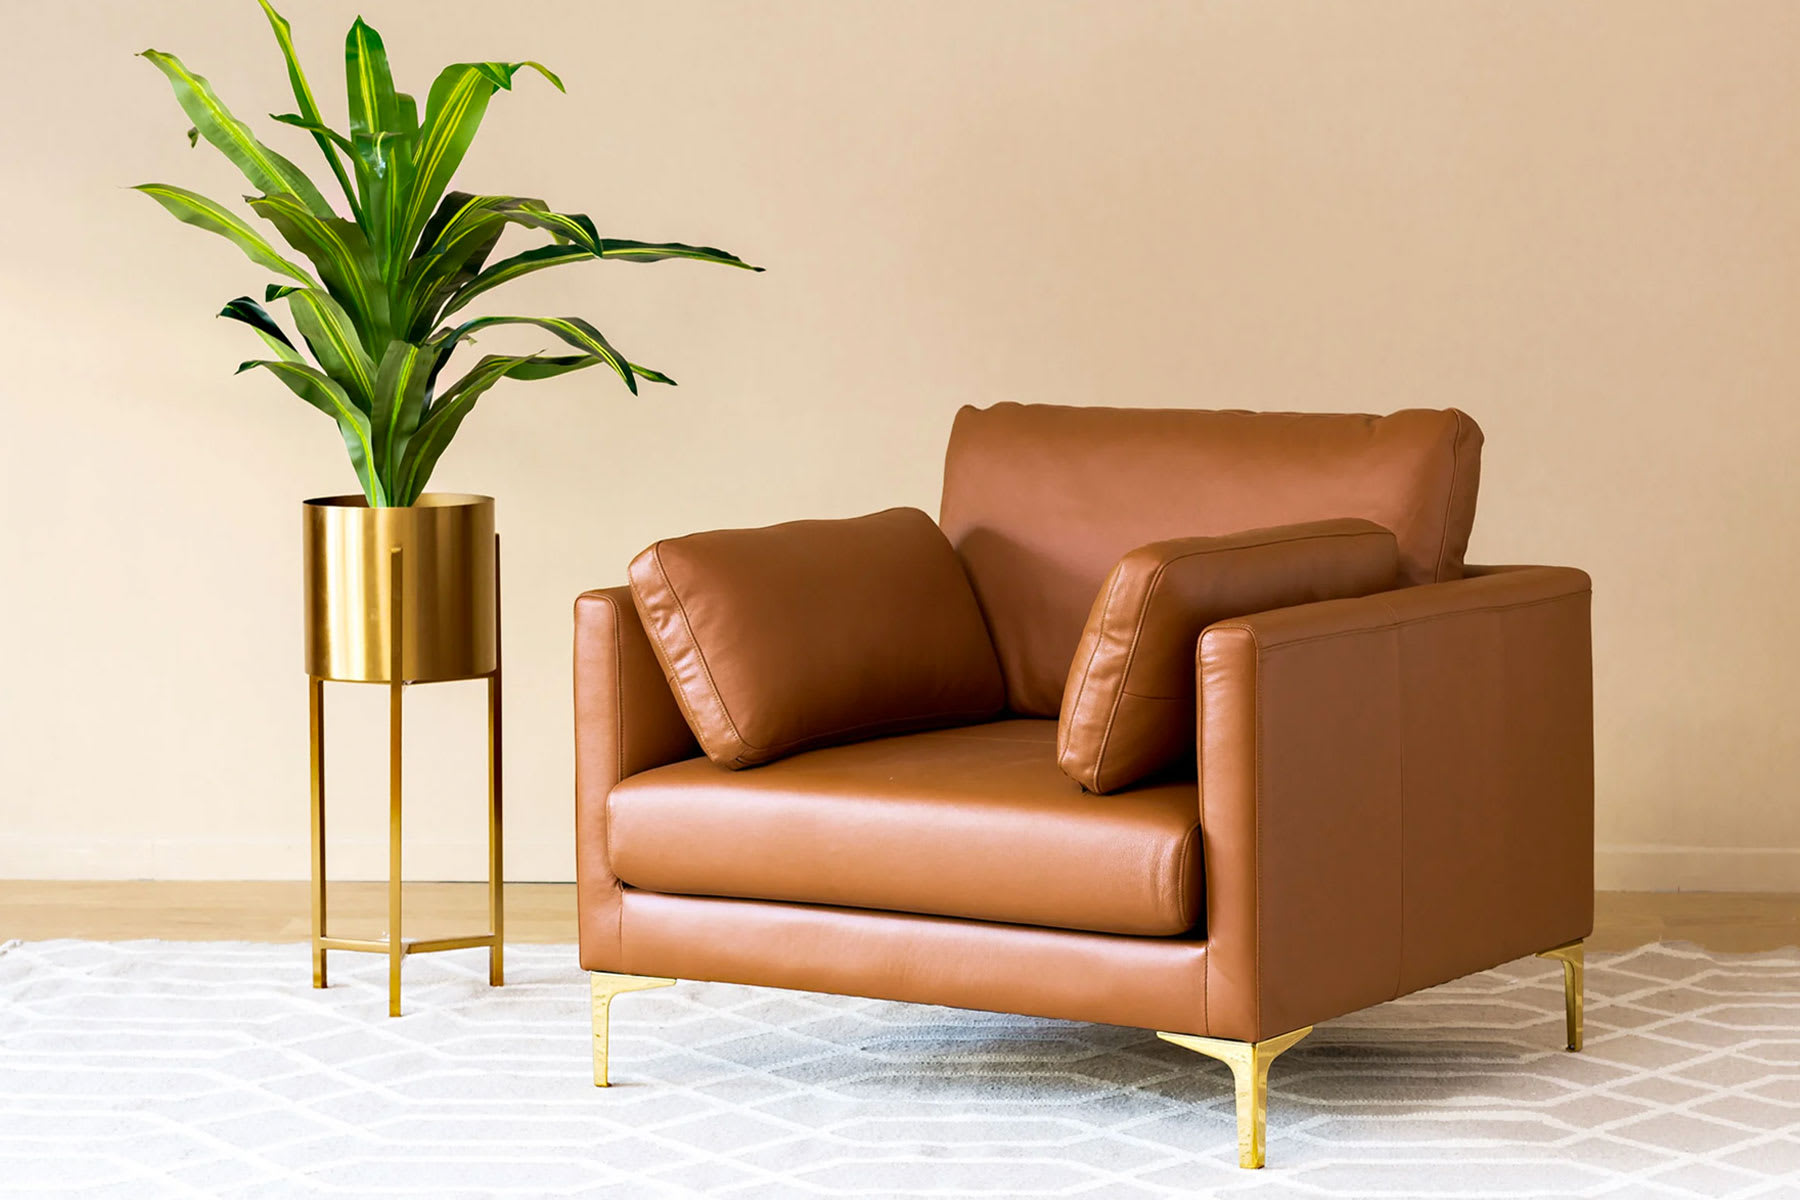 armchair in living room with plant decor